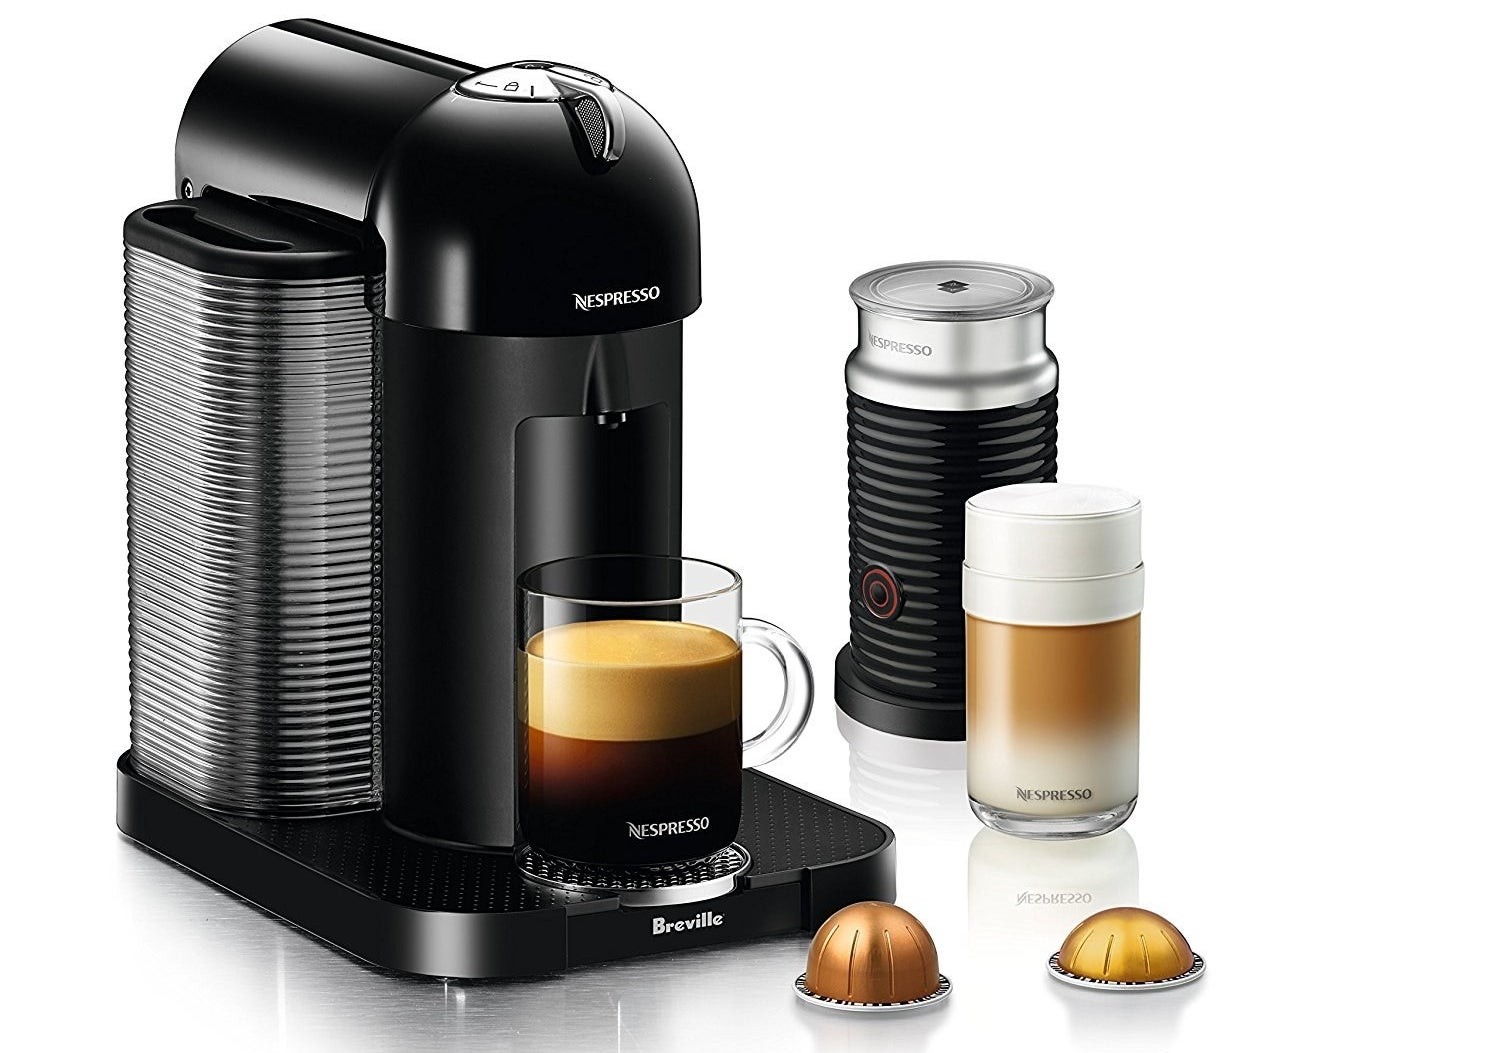 The machine, plus two Nespresso pods and the aeroccino milk frother